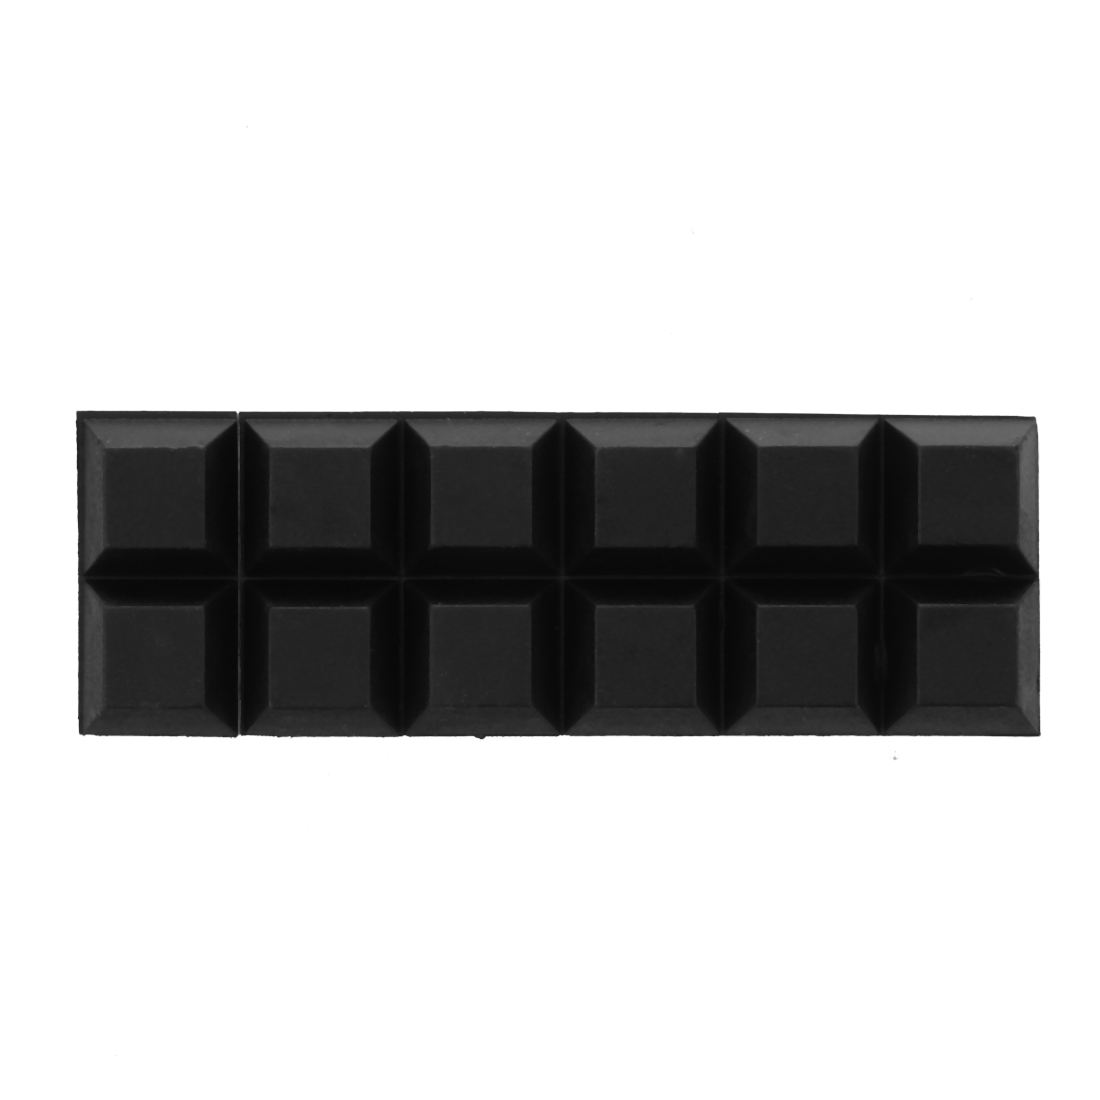 Wholesales Chair Furniture Square 12mmx12mmx6mm Self Adhesive Rubber Pads 12 In 1